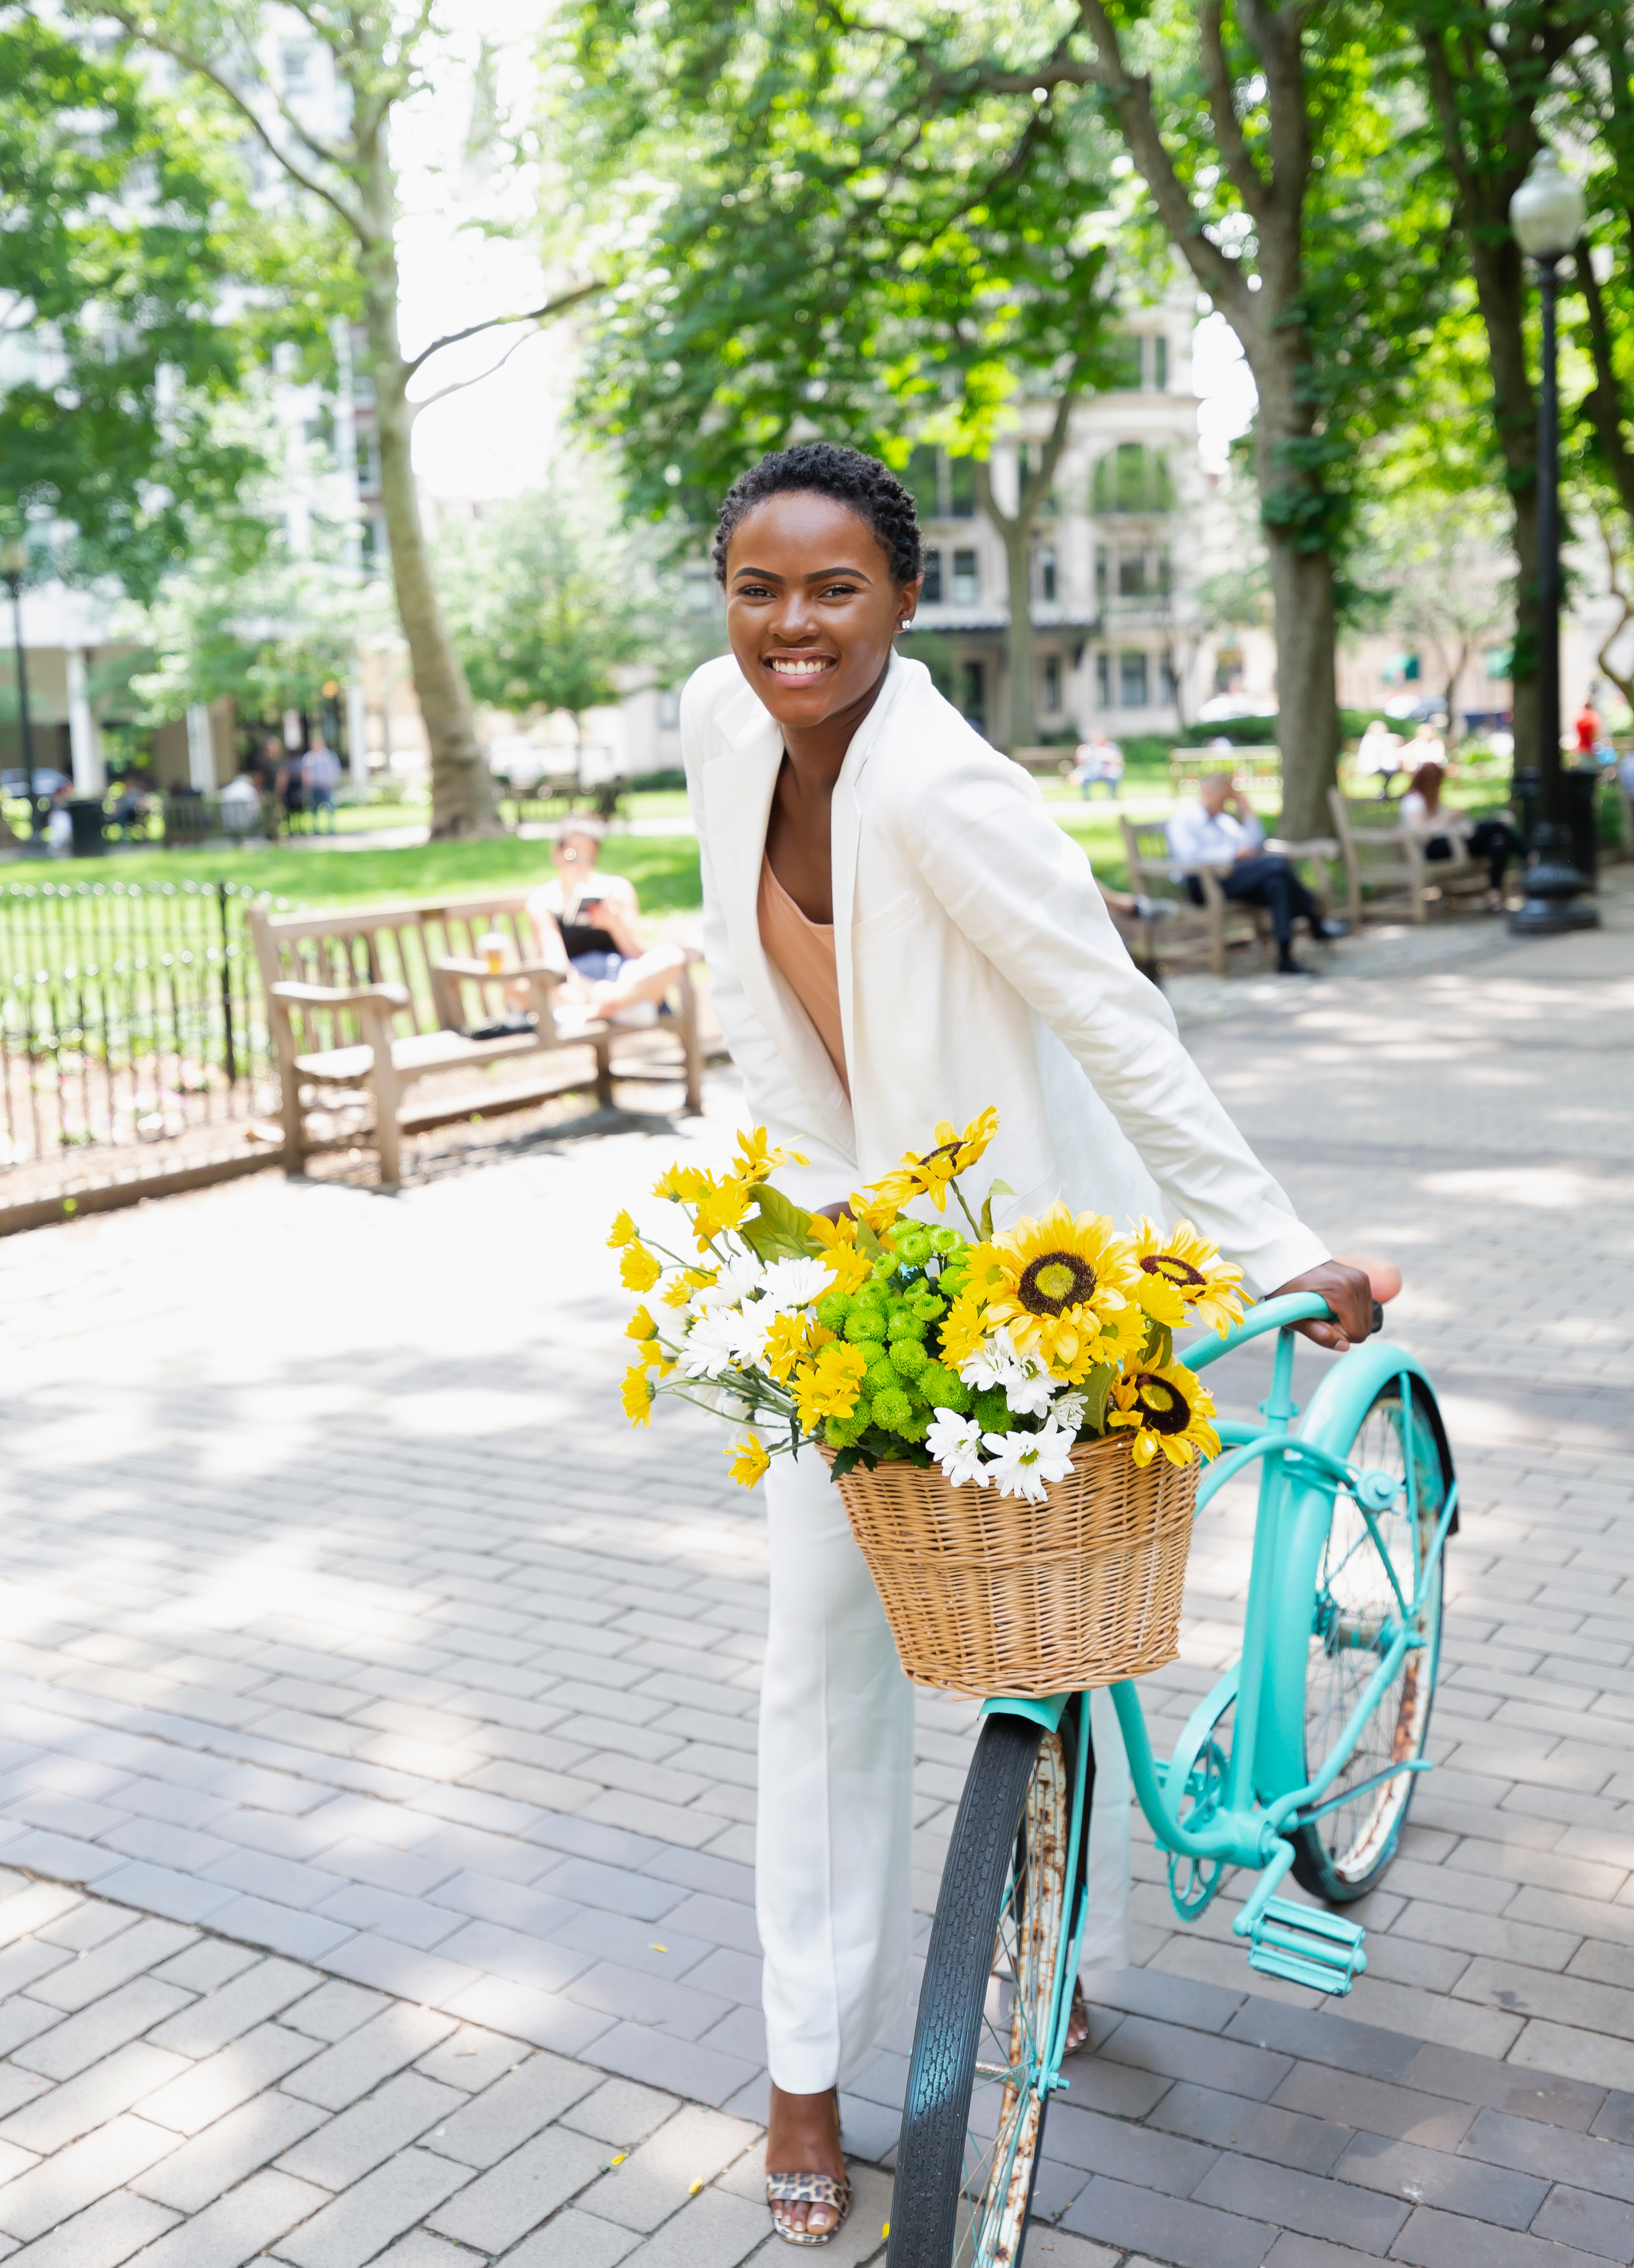 A smiling woman holding a blue cruiser bike with a basket of flowers